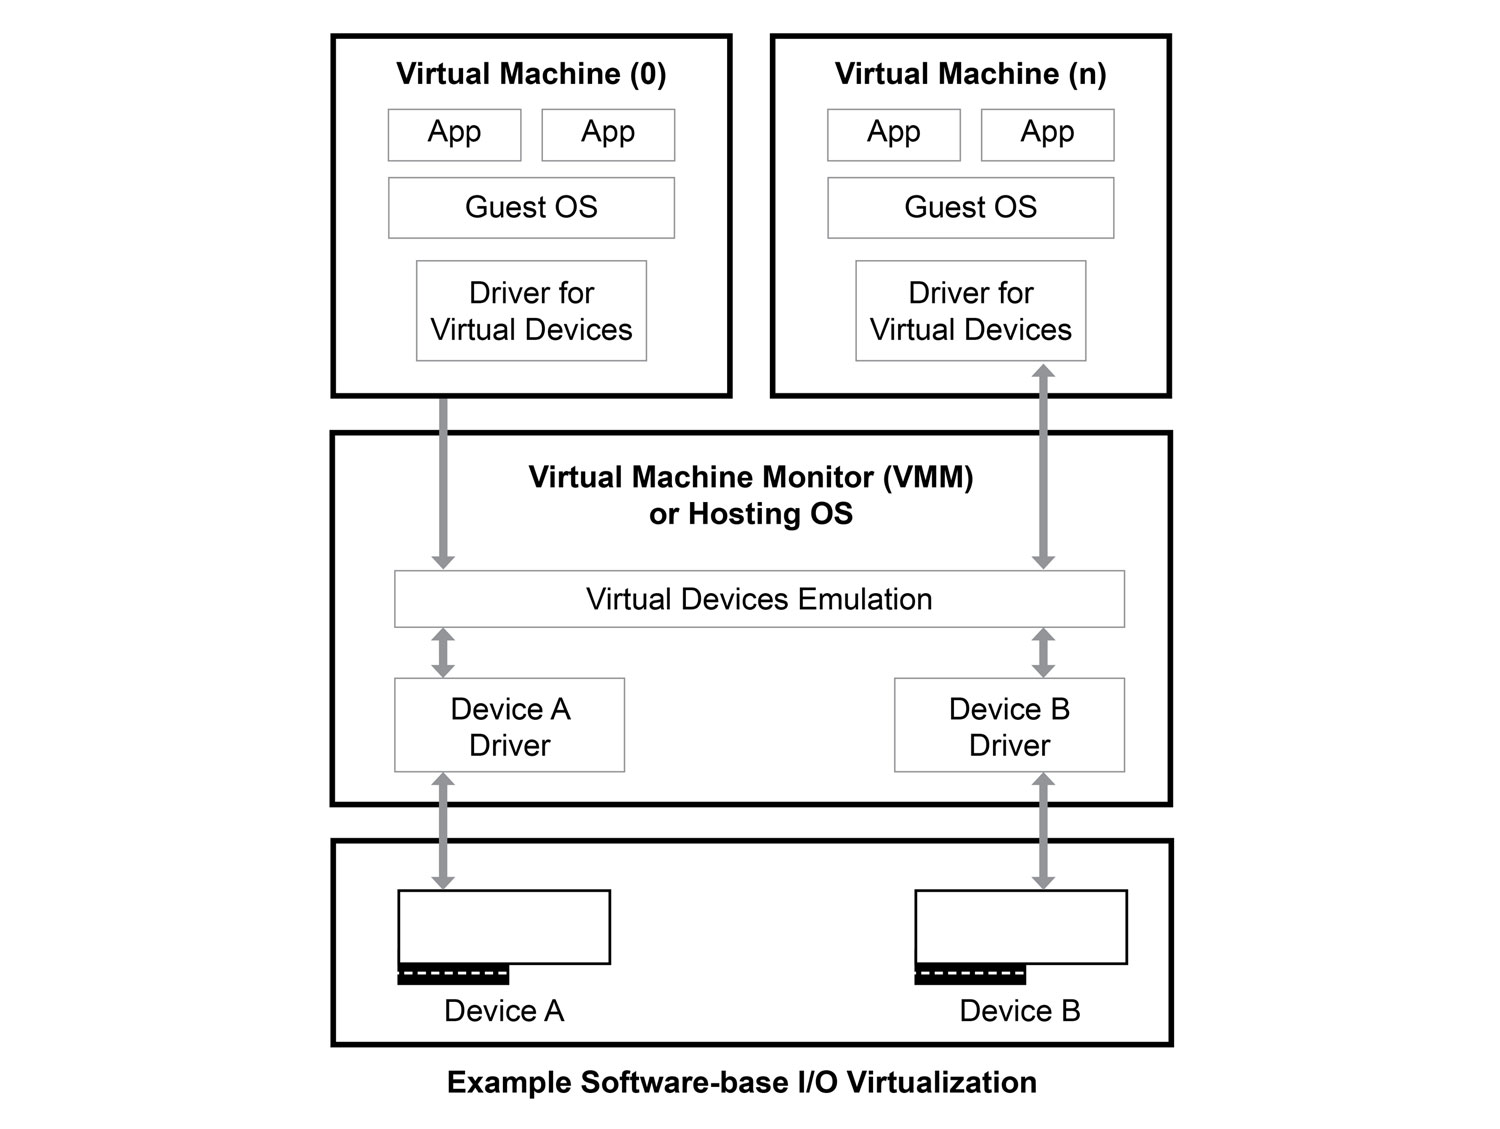 Intel Virtualization Technology for Directed I/O (Intel VT-d) 使用硬體重新對應,最大化系統輸送量